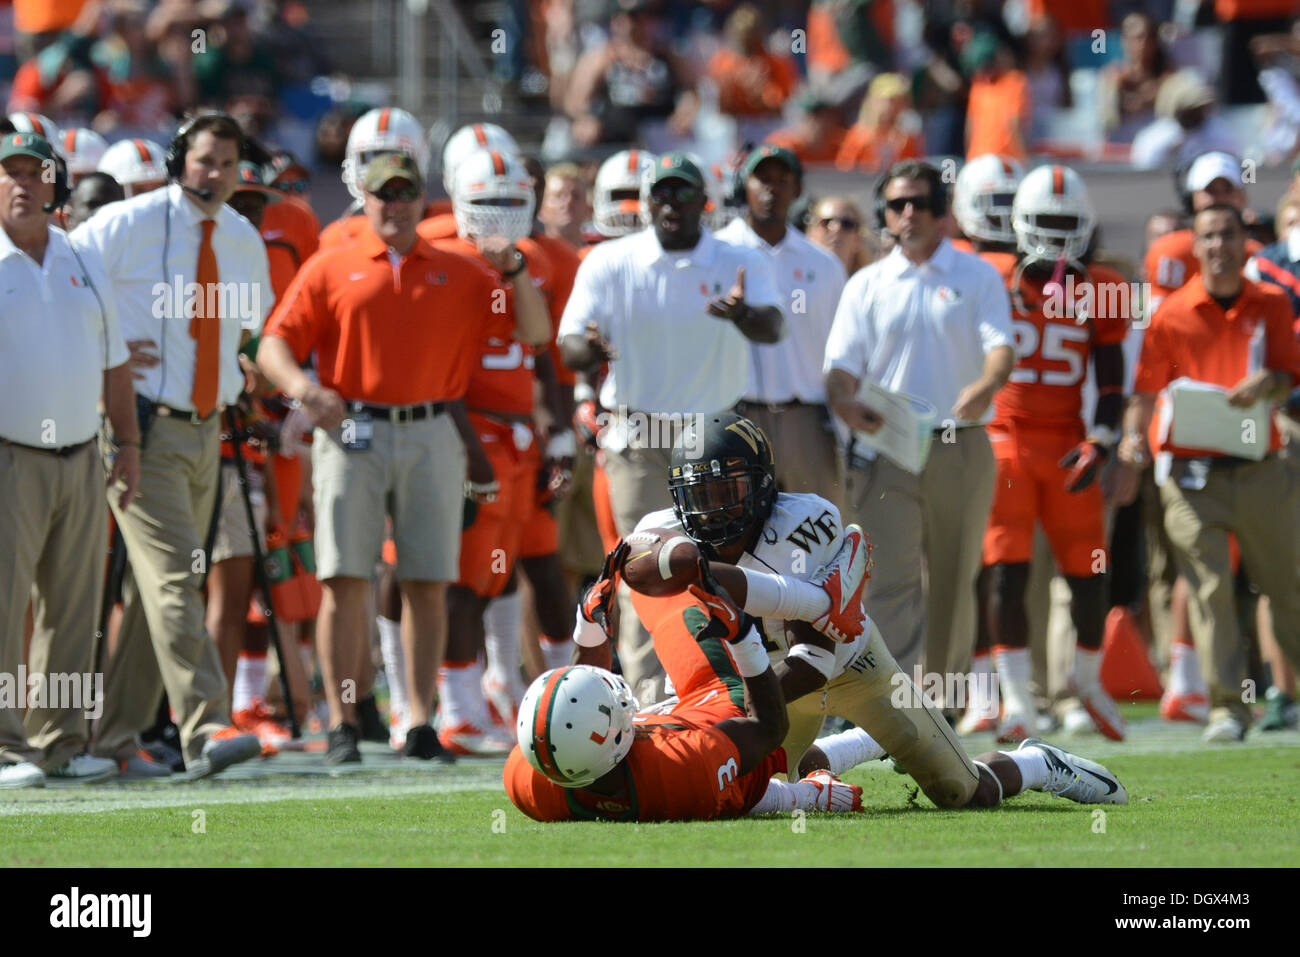 Miami, FL, USA. 26th Oct, 2013. Stacy Coley #3 of Miami catches a ...